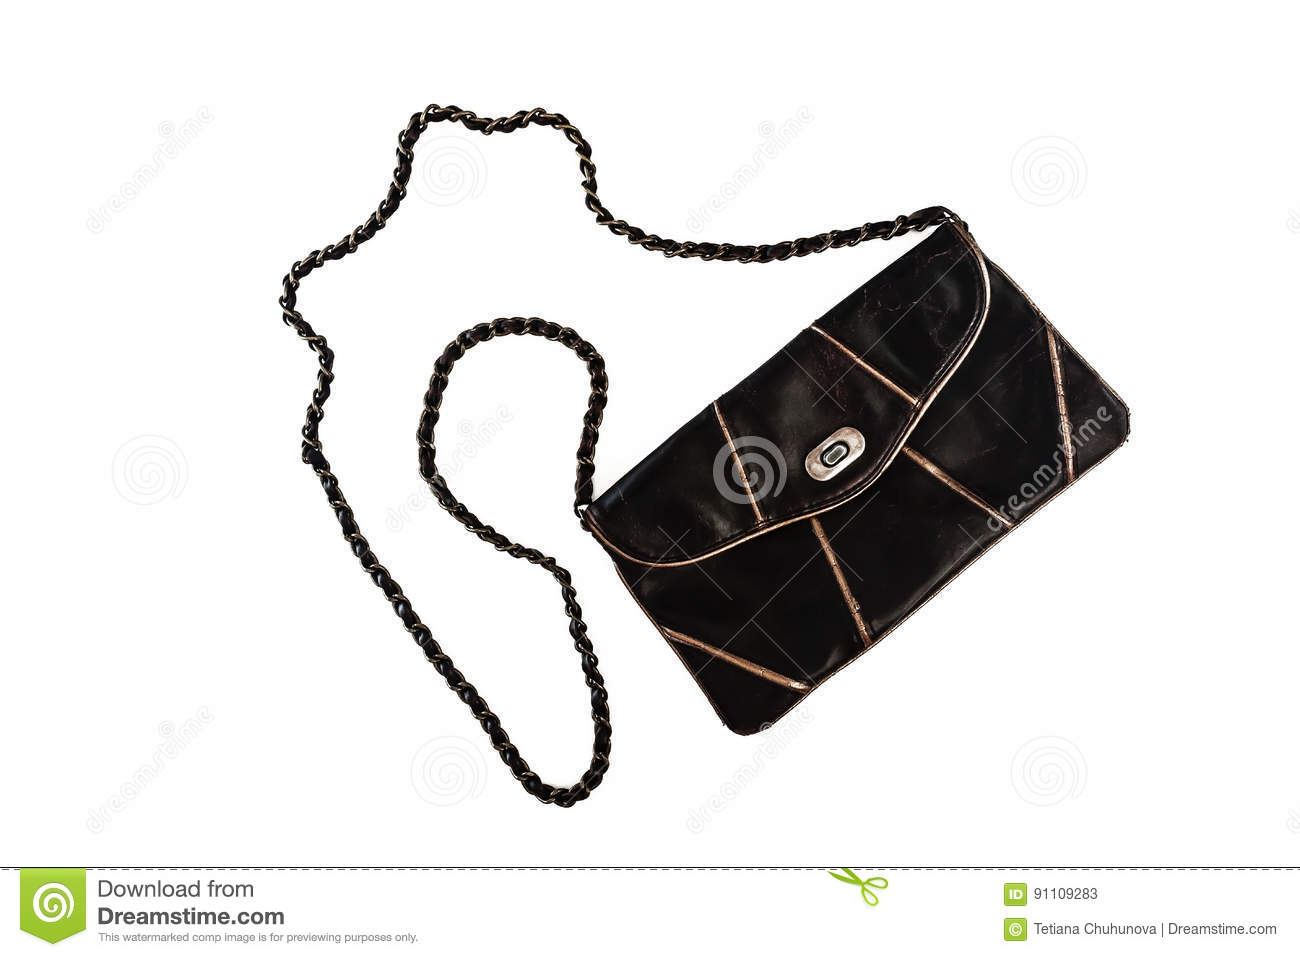 0573a6a1 Female clutch bag on a long handle-chain, isolated on a white background.